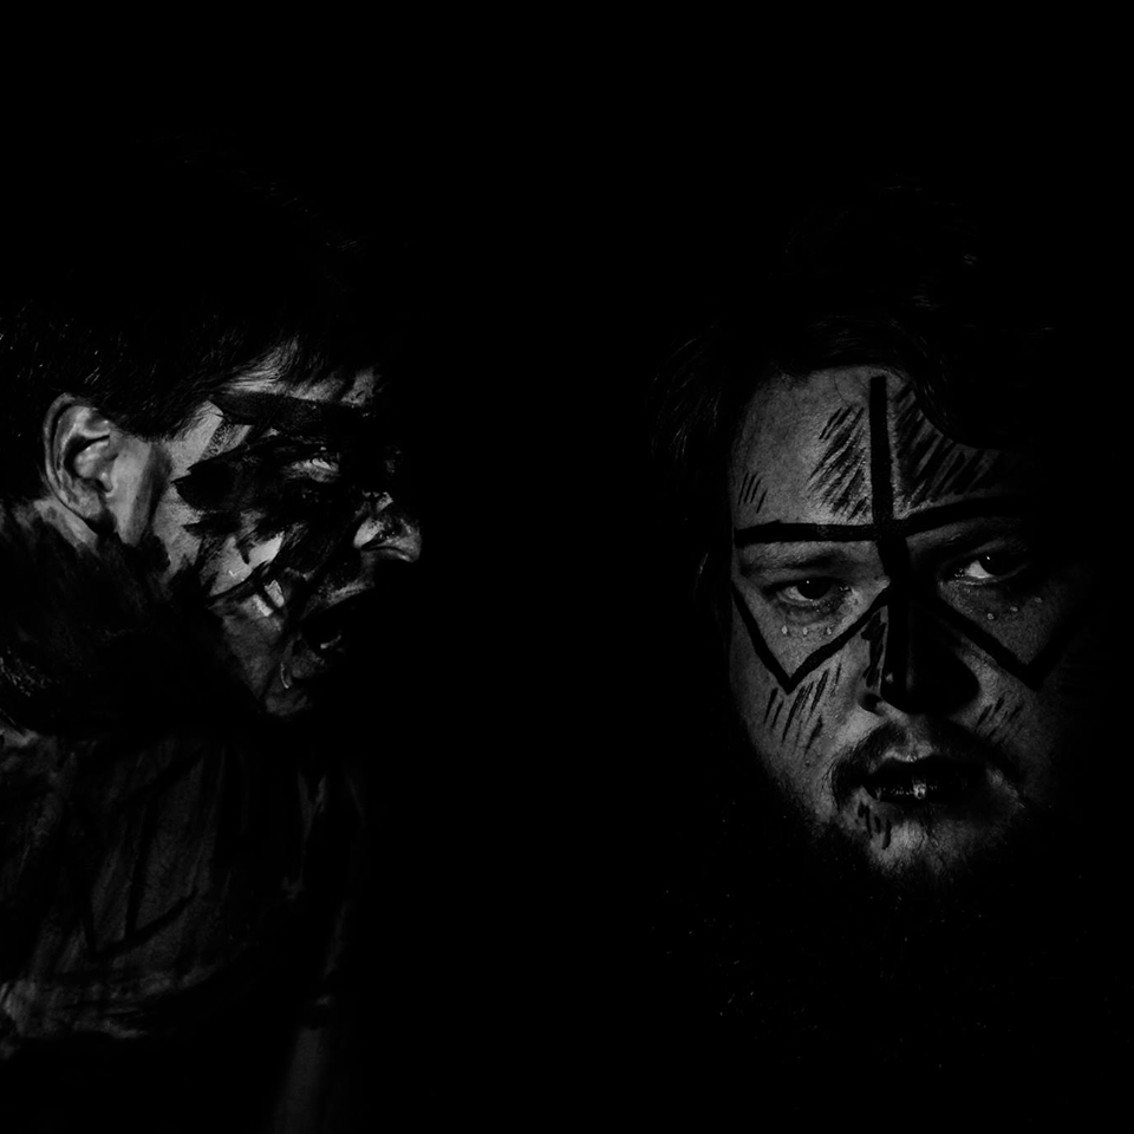 Dark electro act Avarice In Audio reveals first 2 tracks of upcoming album - and it's hard and dirty!